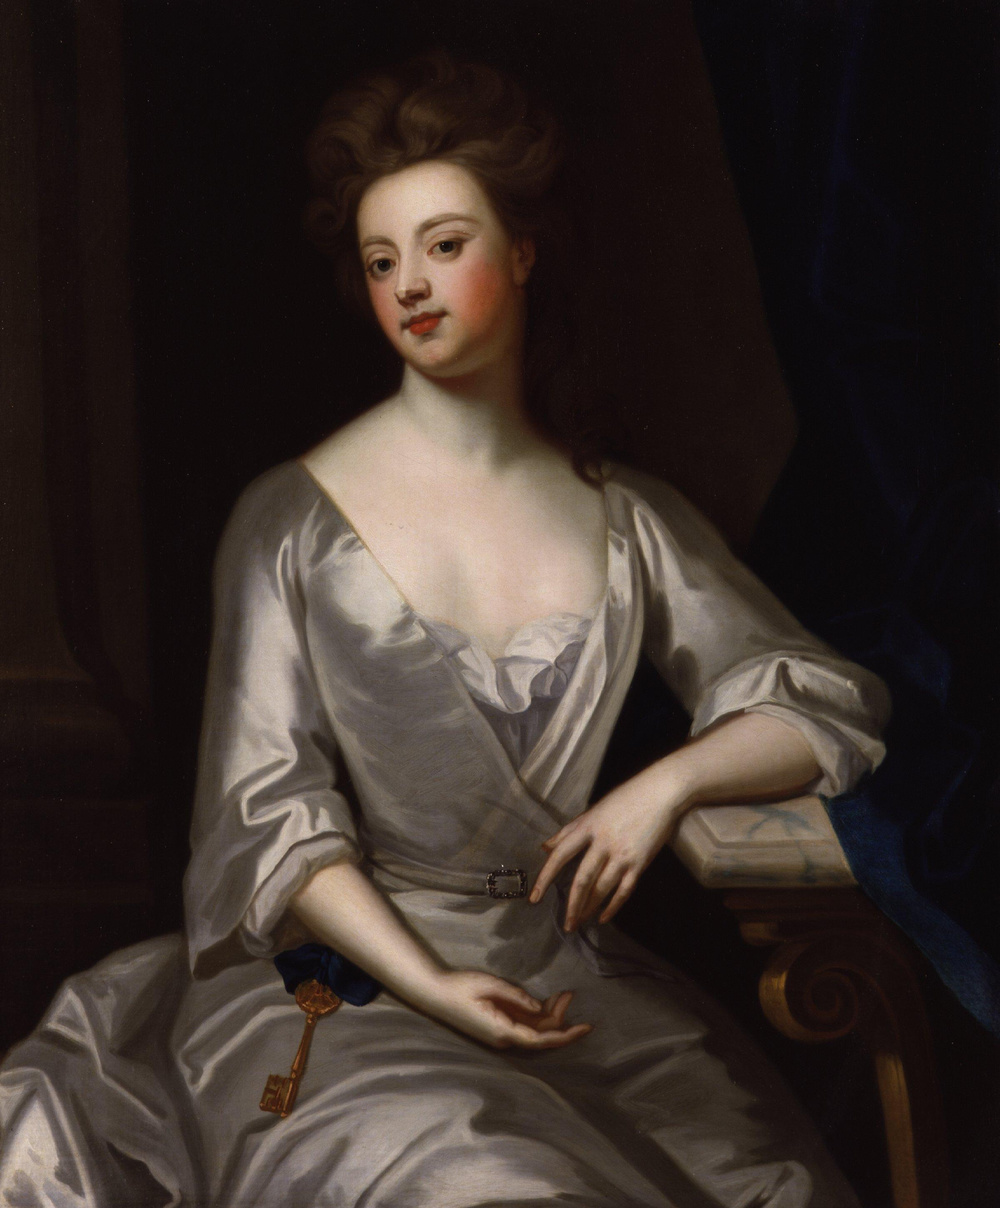 Sarah Jennings, in classic late 1600s-early 1700s fashion, with her signature key, which symbolized her status at court and being able to access all rooms.